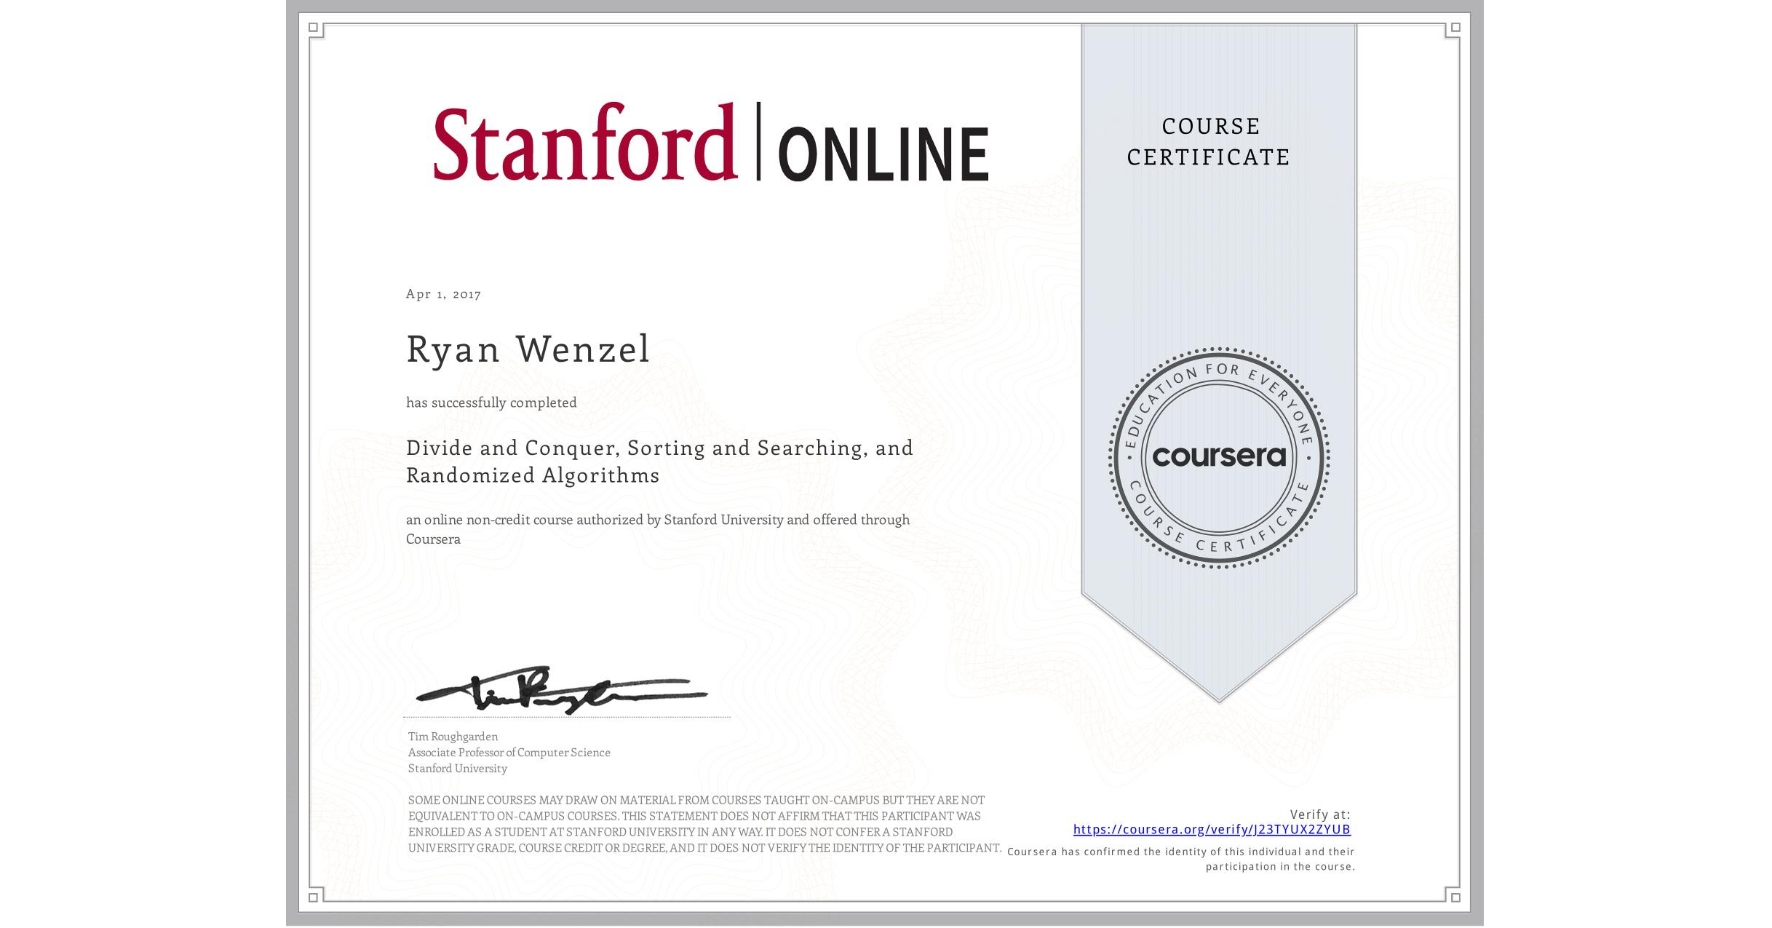 View certificate for Ryan Wenzel, Divide and Conquer, Sorting and Searching, and Randomized Algorithms, an online non-credit course authorized by Stanford University and offered through Coursera